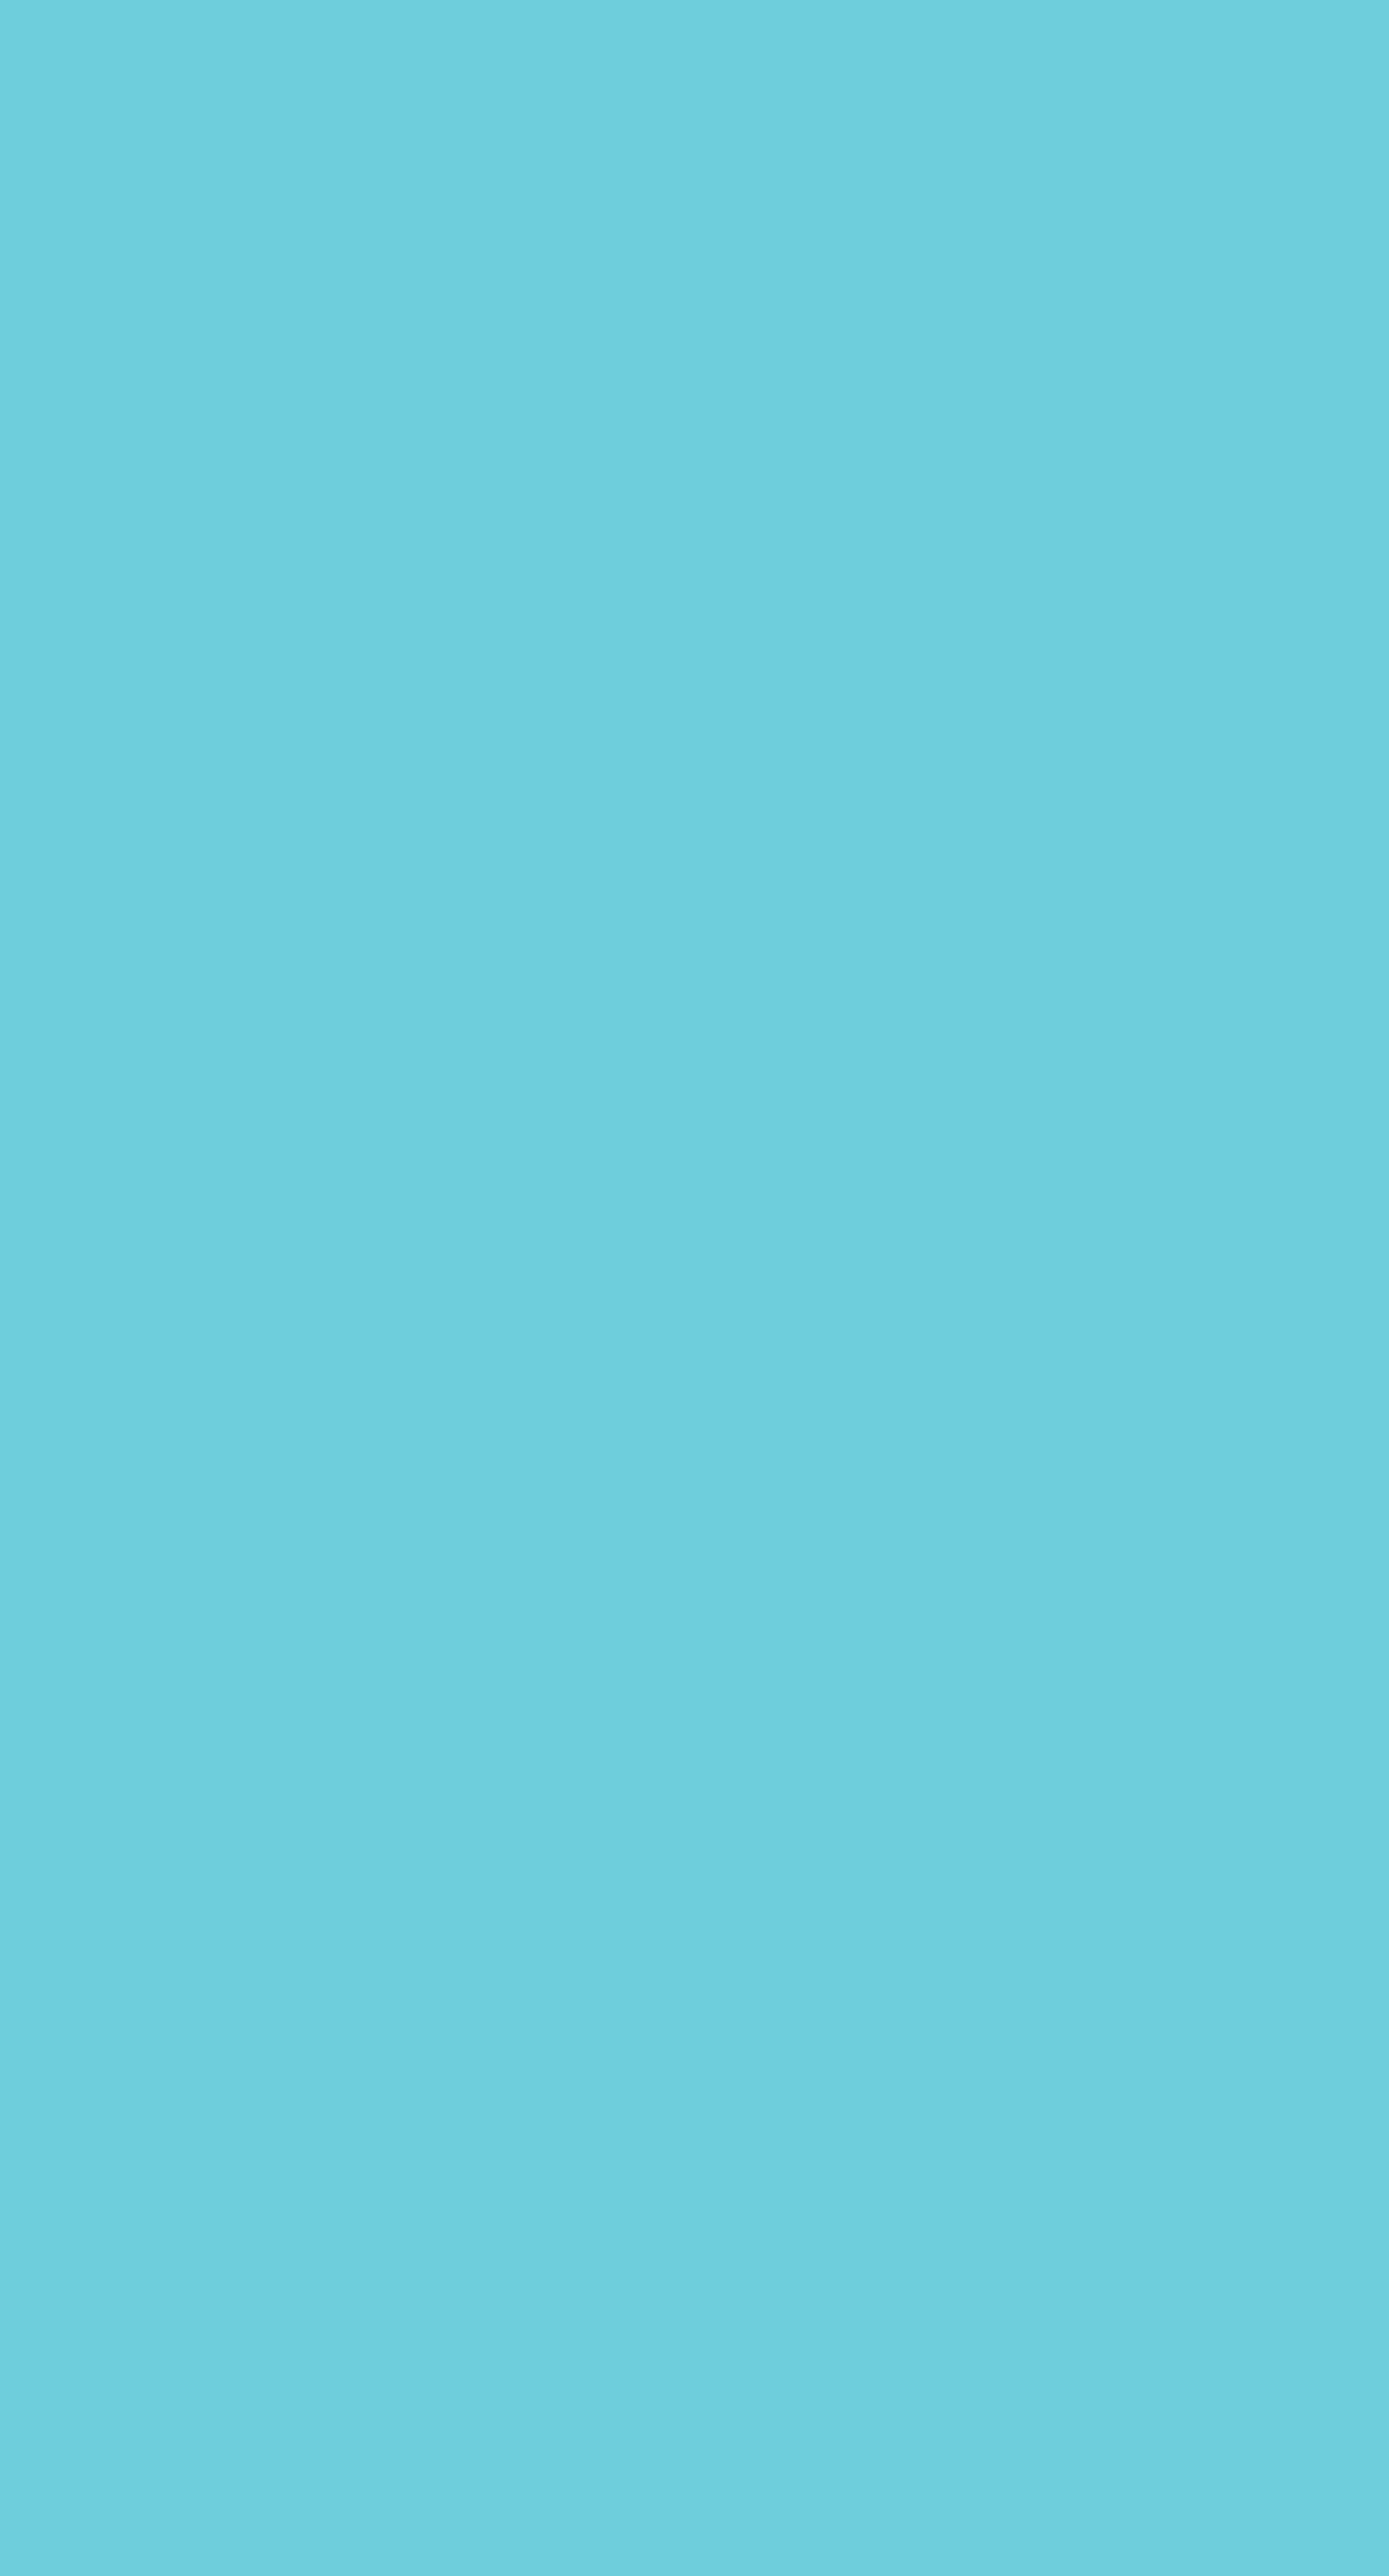 Water blue wallpapersc iPhone7Plus 1398x2592